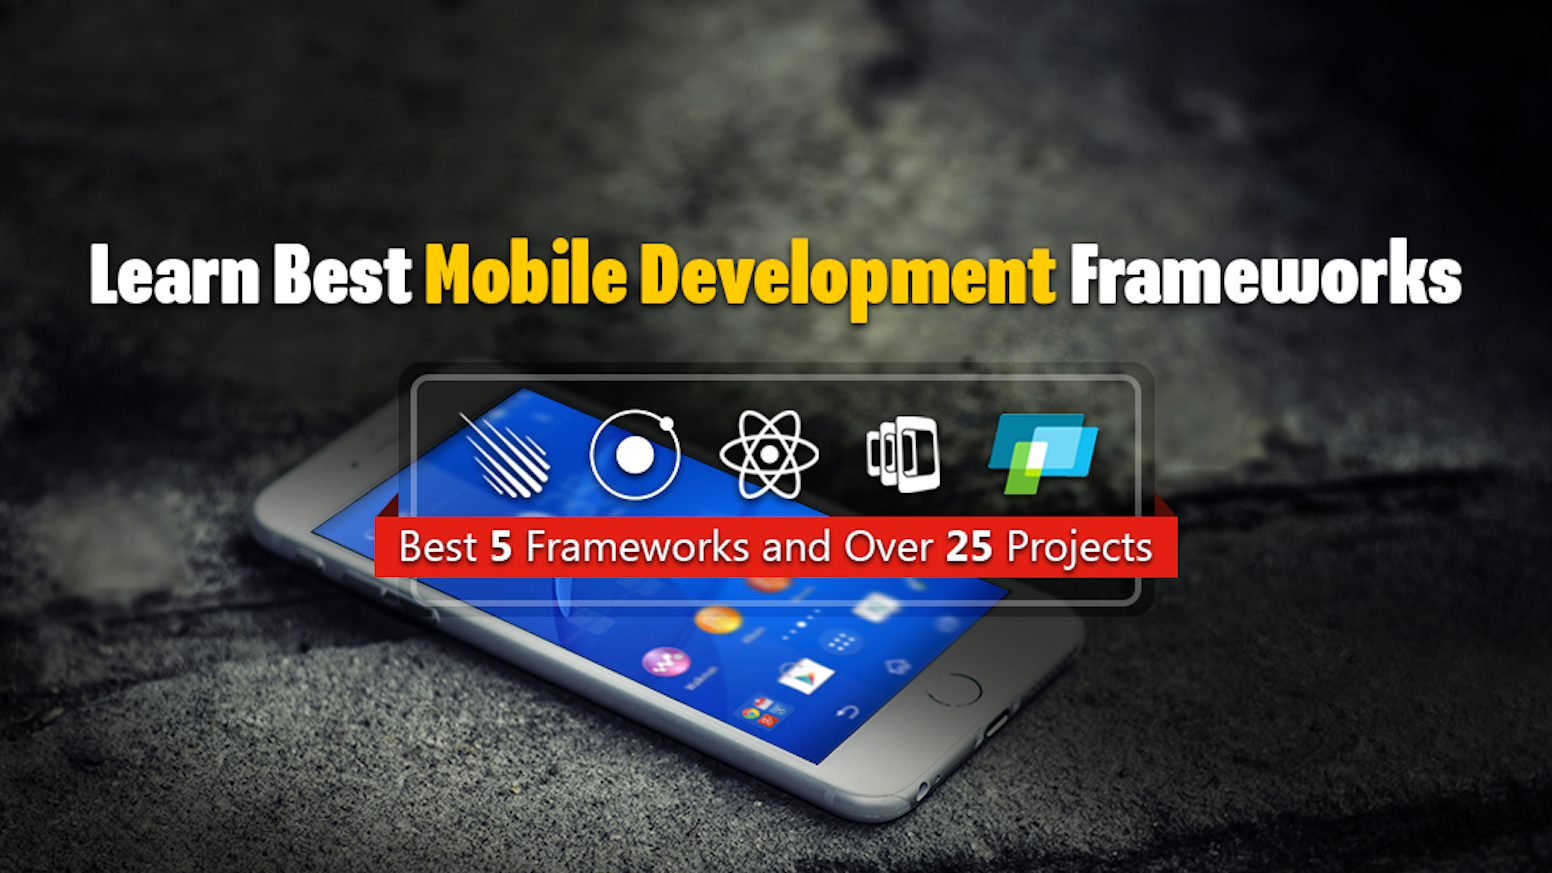 Learn 5 Best Mobile Development Frameworks (Ionic, PhoneGap, React Native, JQM and Meteor) By Building Over 25 Projects